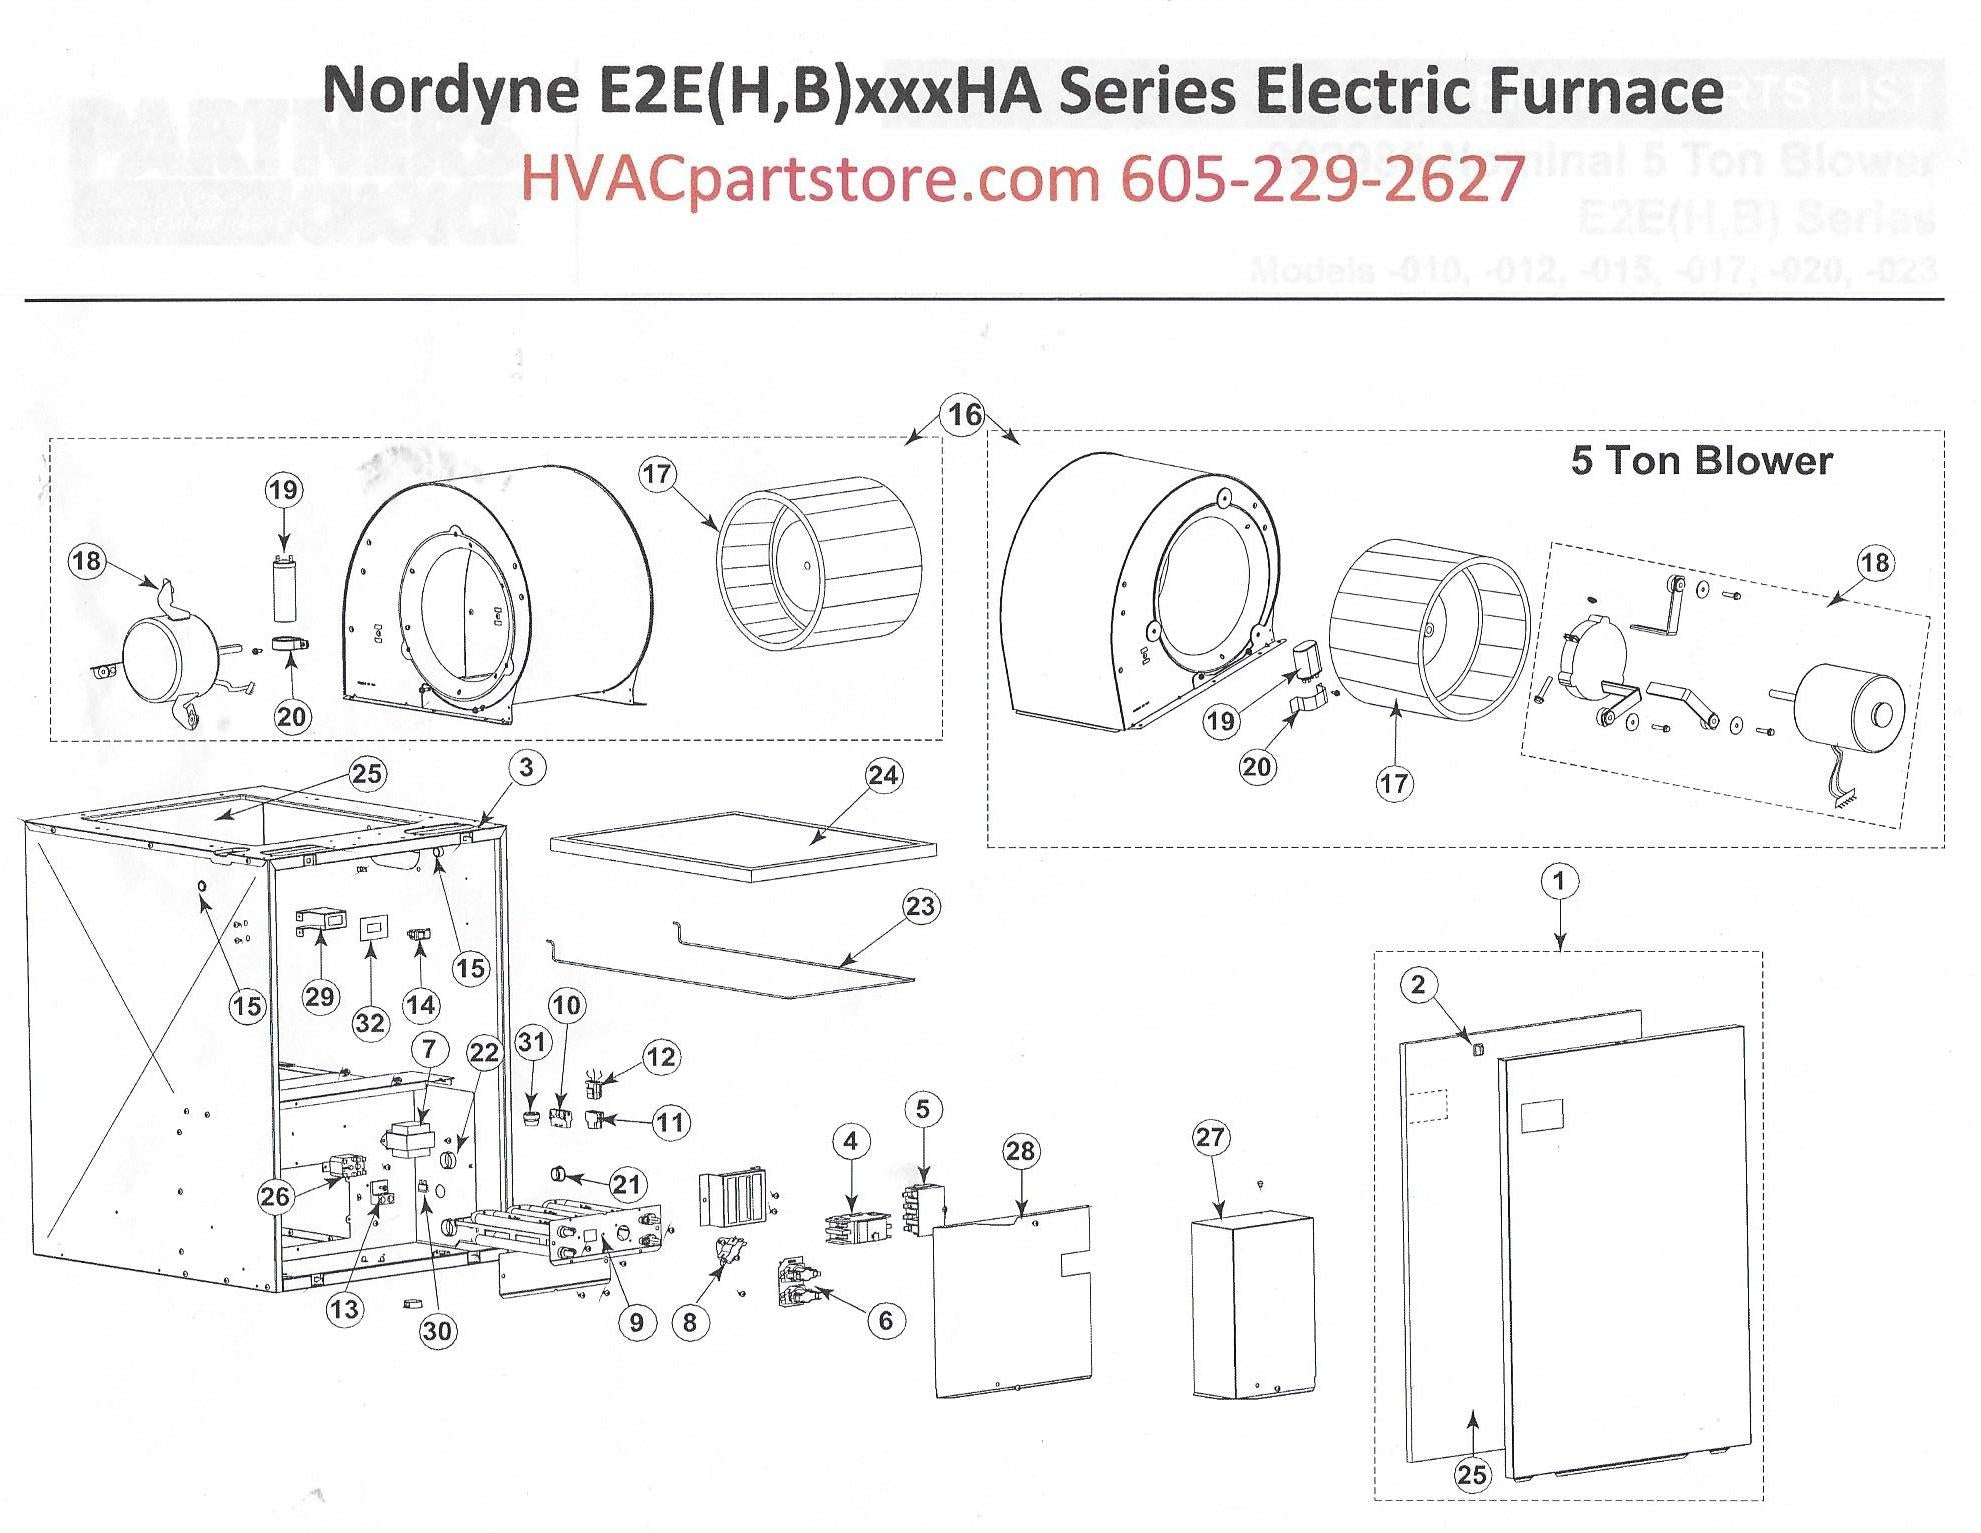 E2HADiagram_b4400f5e fcd1 43cd a422 4ef2ce8cde99?6326583503626438513 e2eb017ha nordyne electric furnace parts hvacpartstore Coleman Furnace Wiring Diagram at gsmx.co